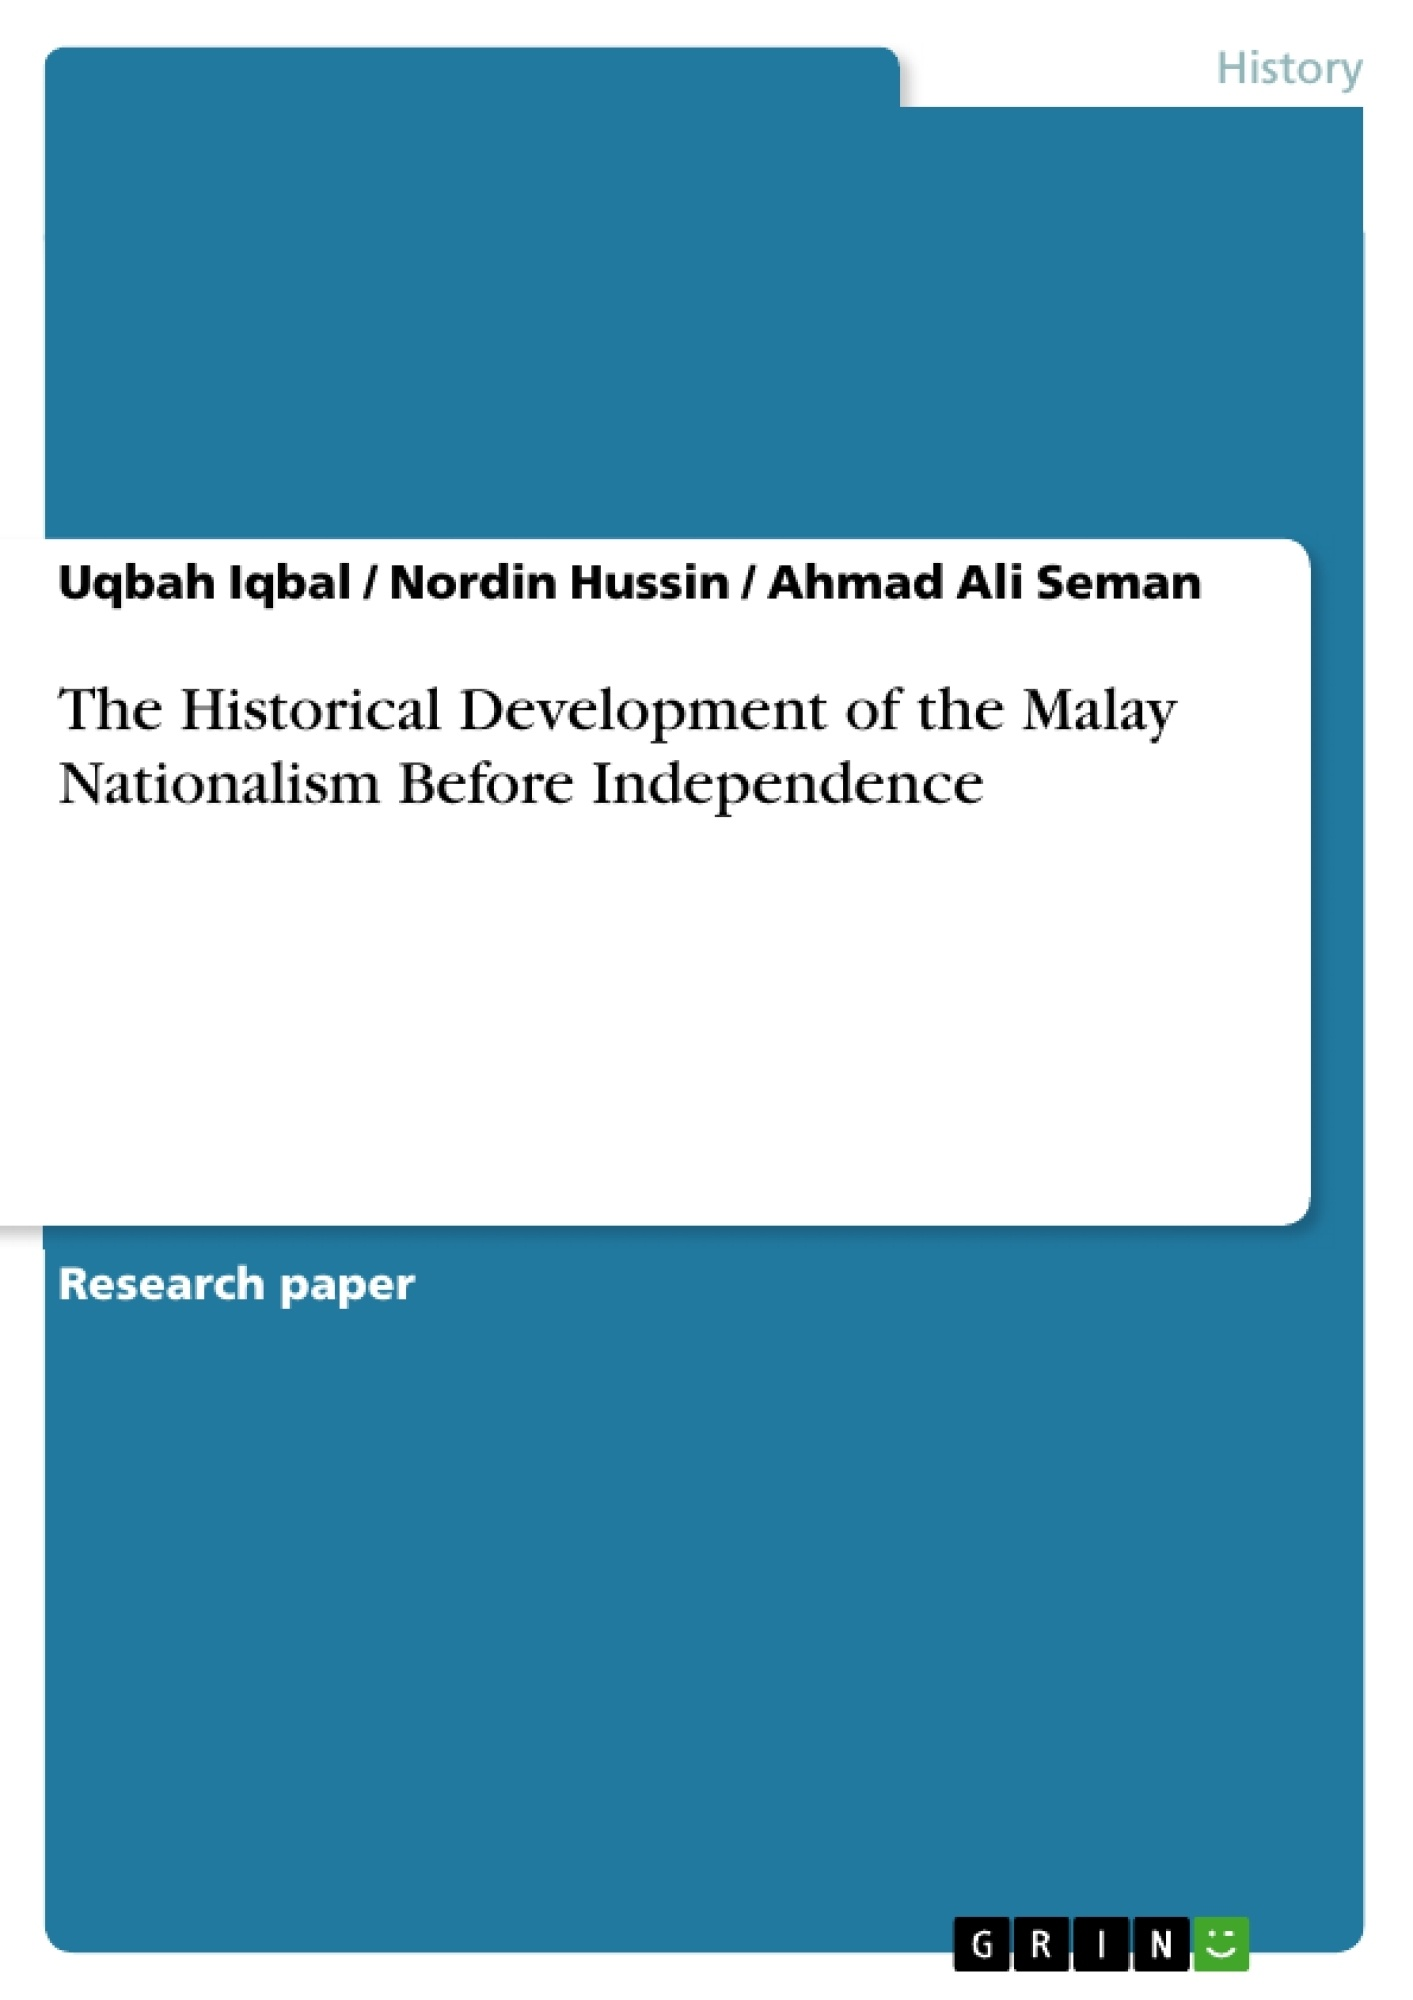 Title: The Historical Development of the Malay Nationalism Before Independence